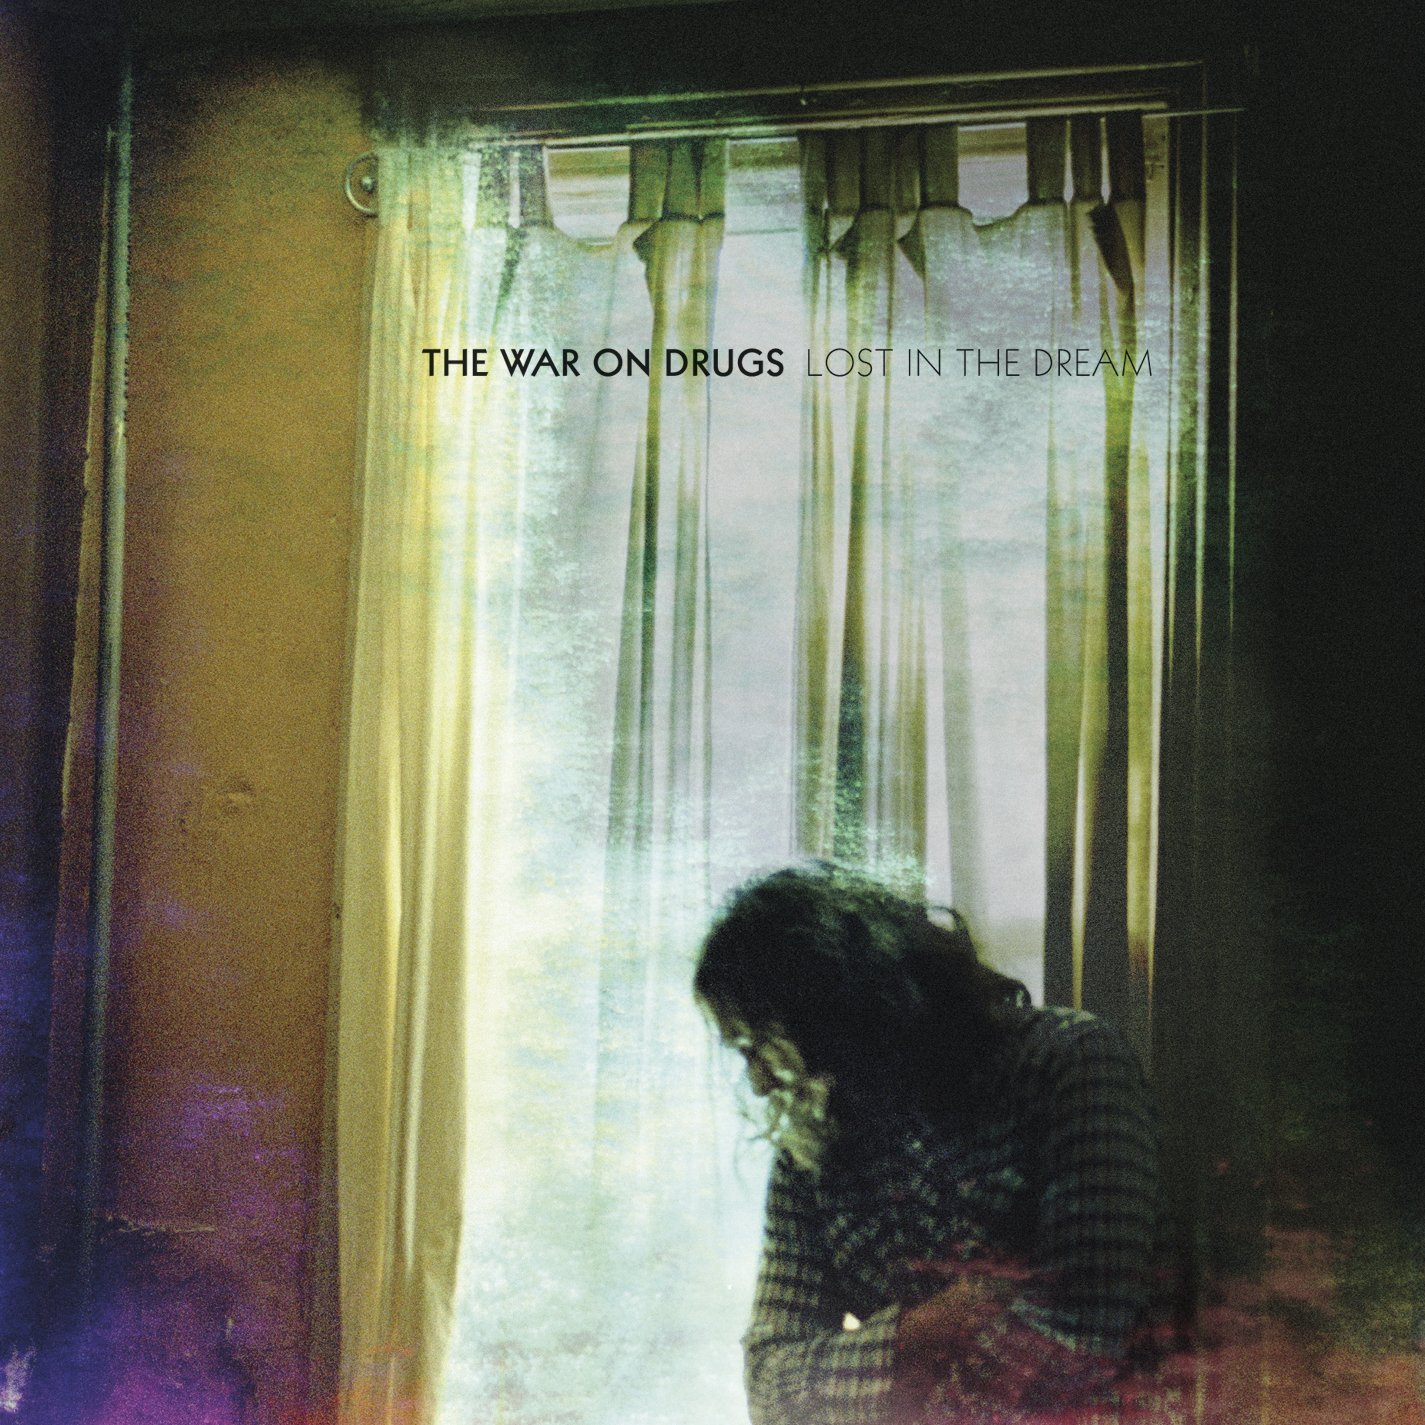 Vinilo : The War on Drugs - Lost in the Dream (2 Disc)